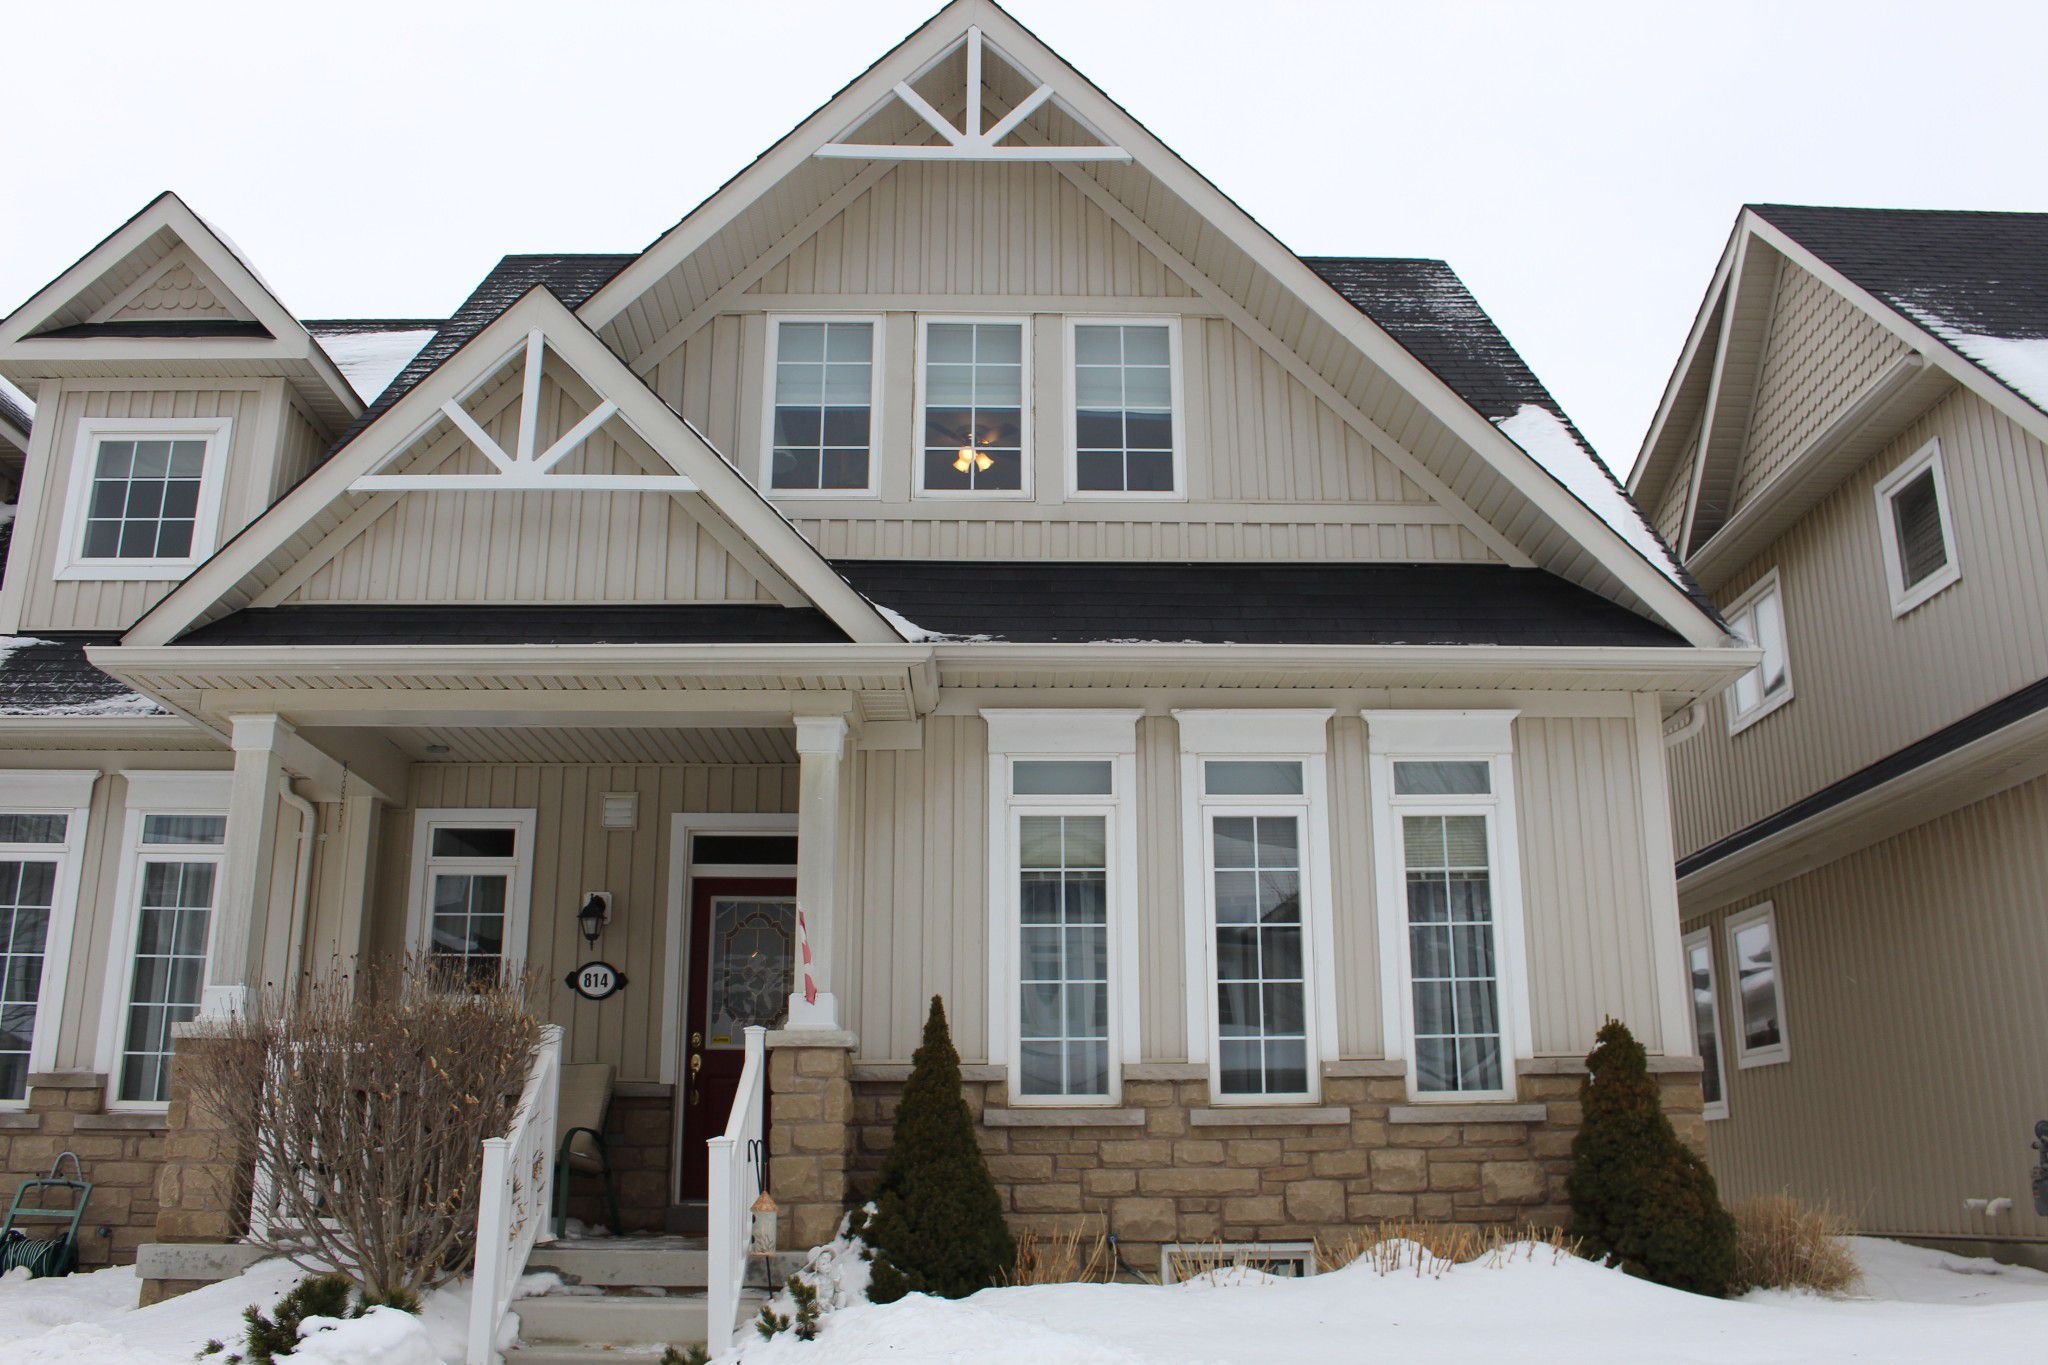 Main Photo: 814 Leslie Street in Cobourg: Residential Attached for sale : MLS®# 510851318